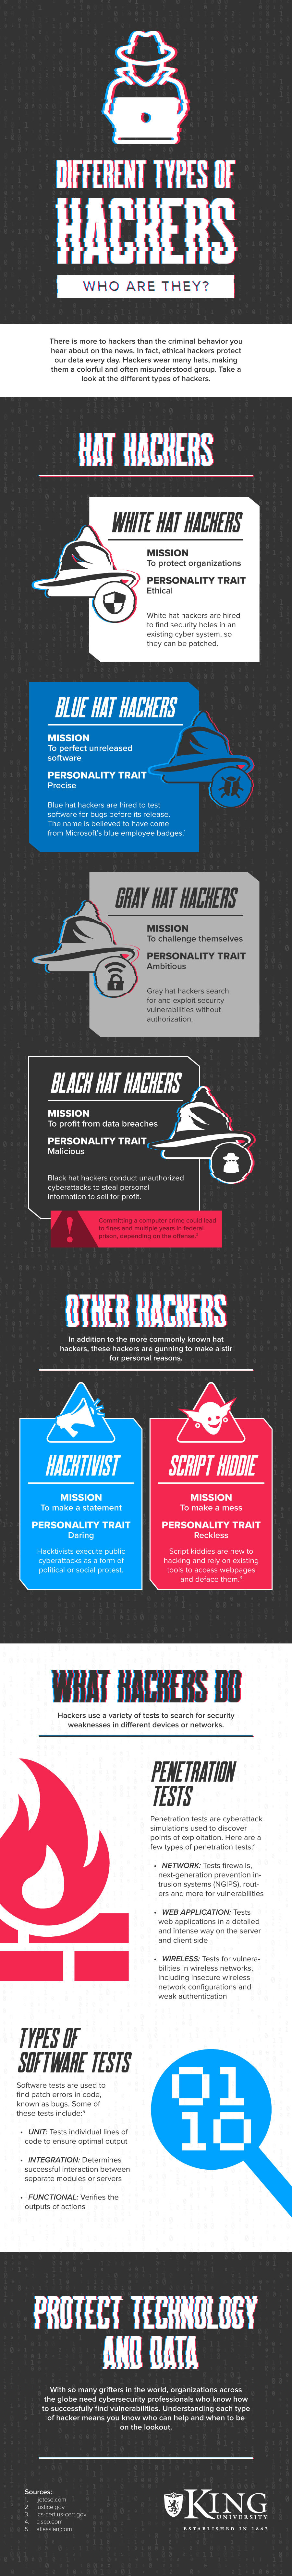 Different Types of Hackers Infographic